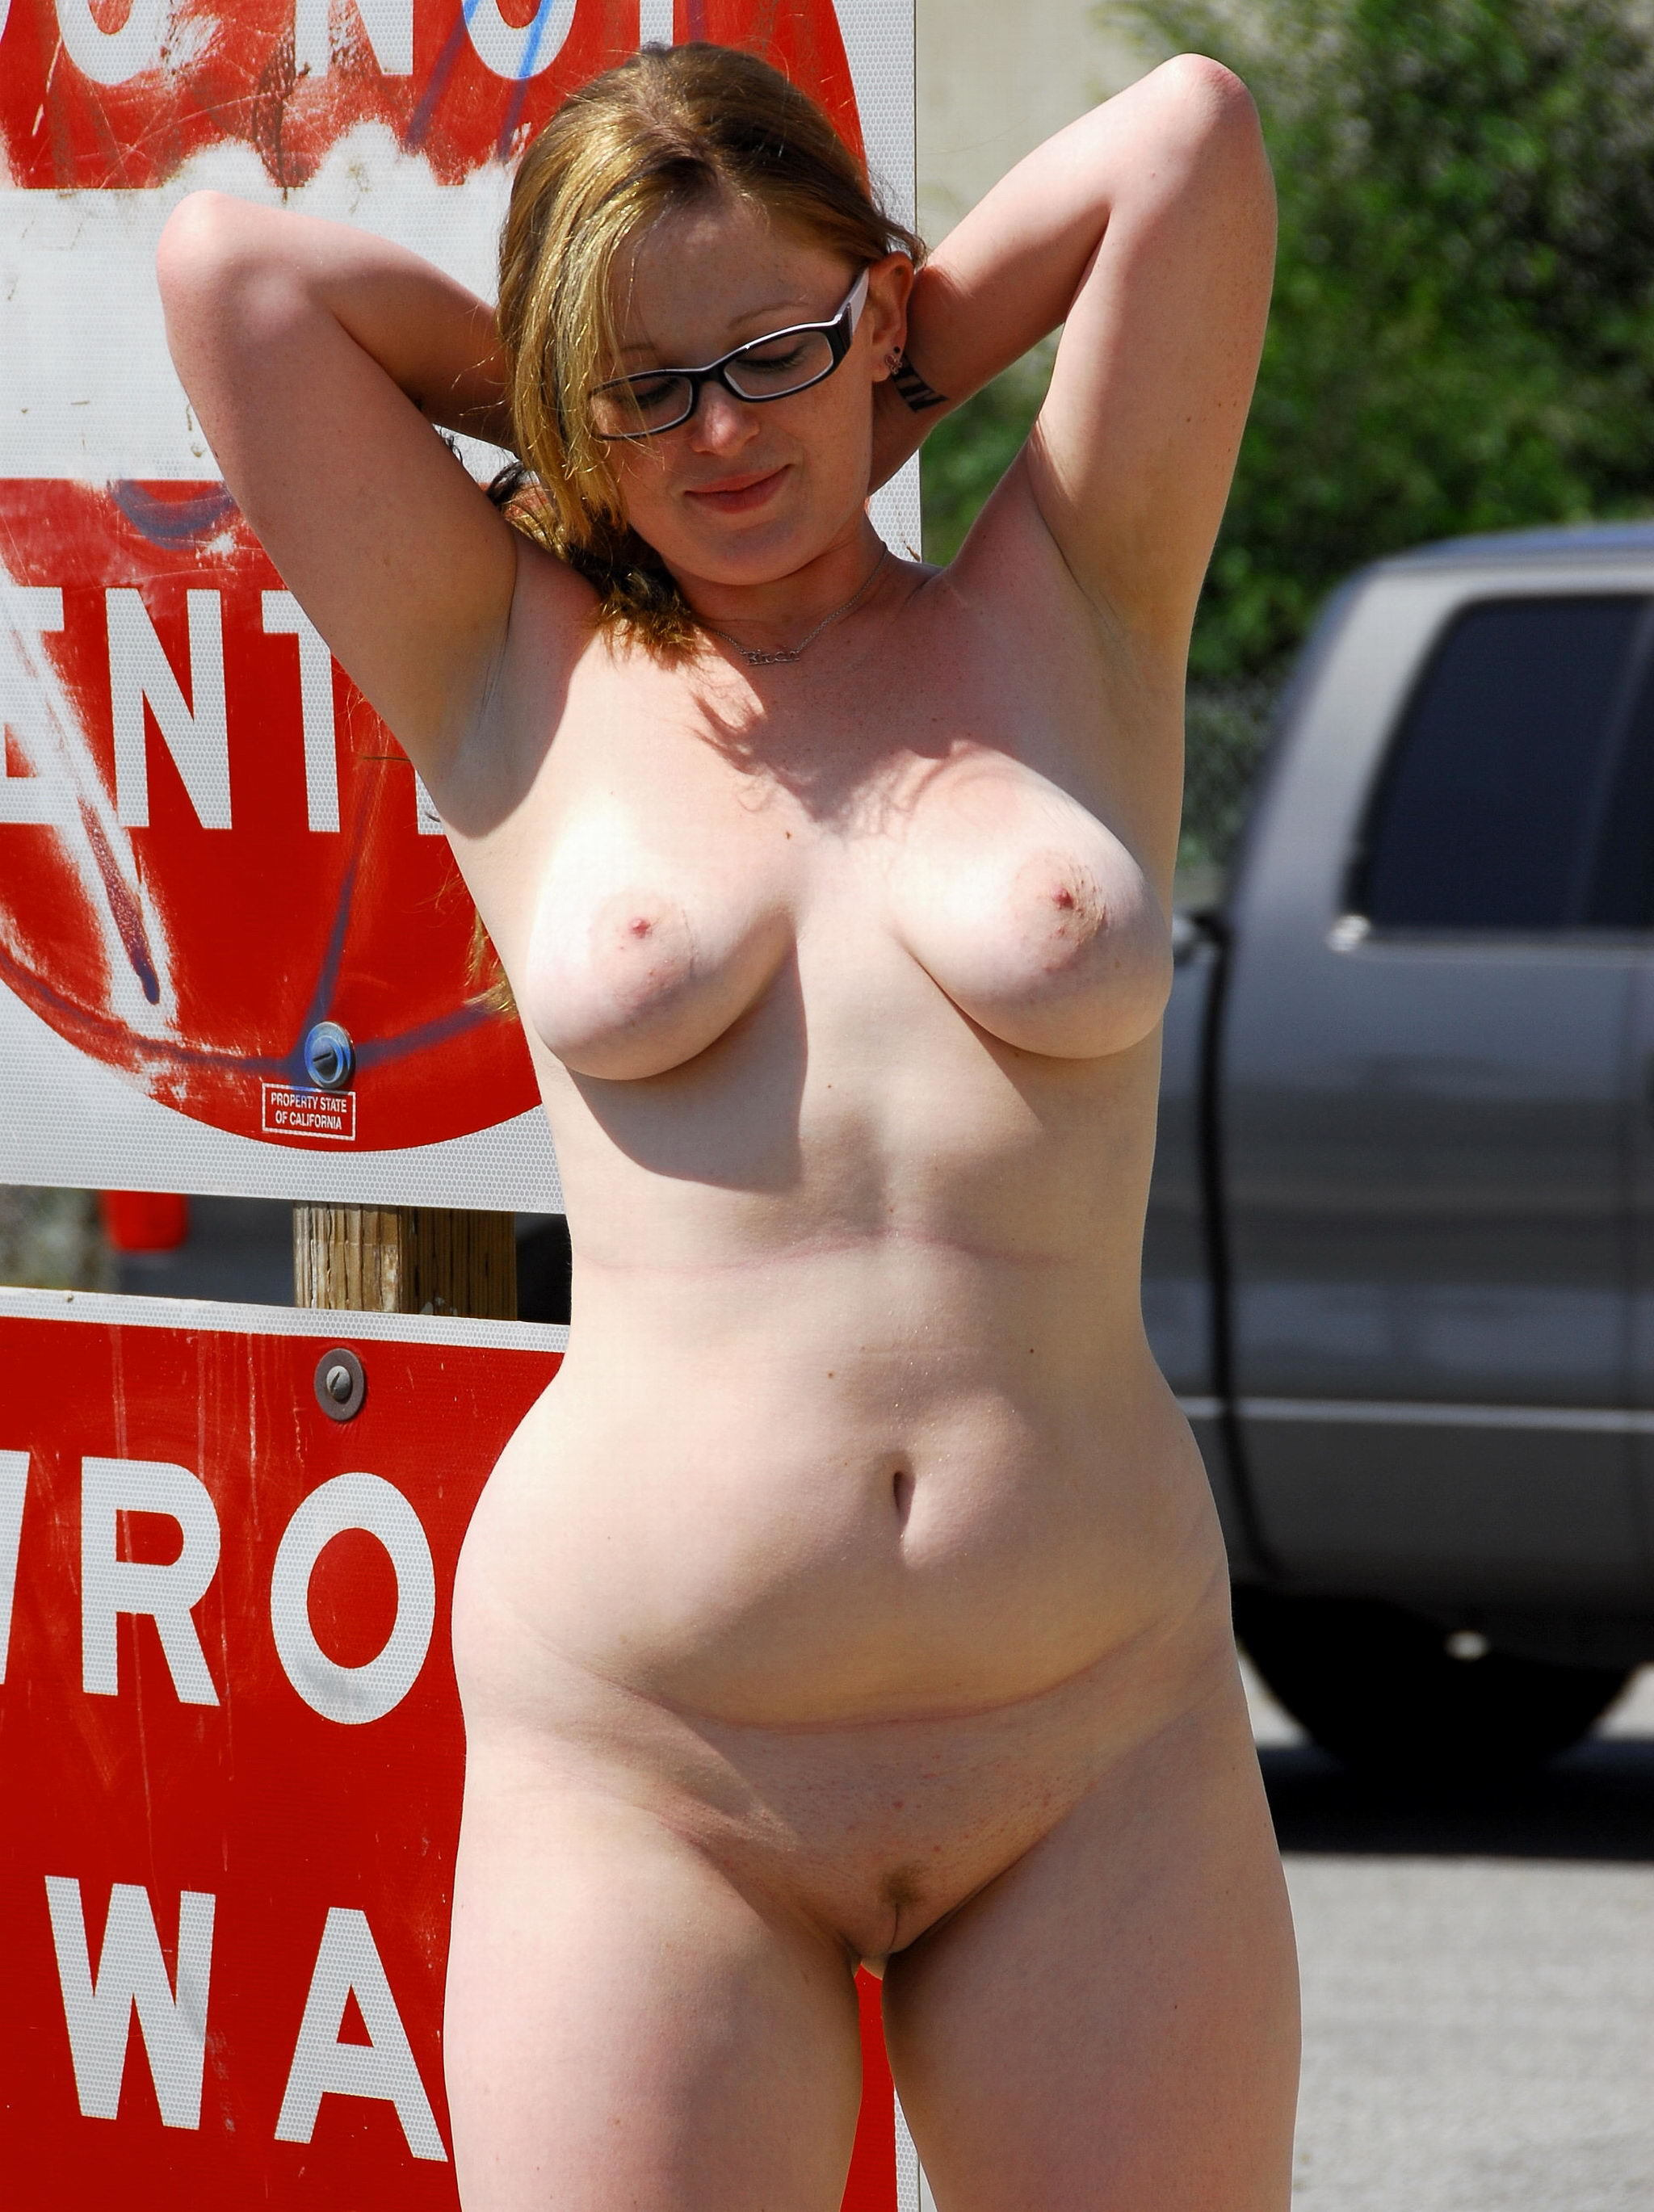 chubby-nudists-nude-pictures